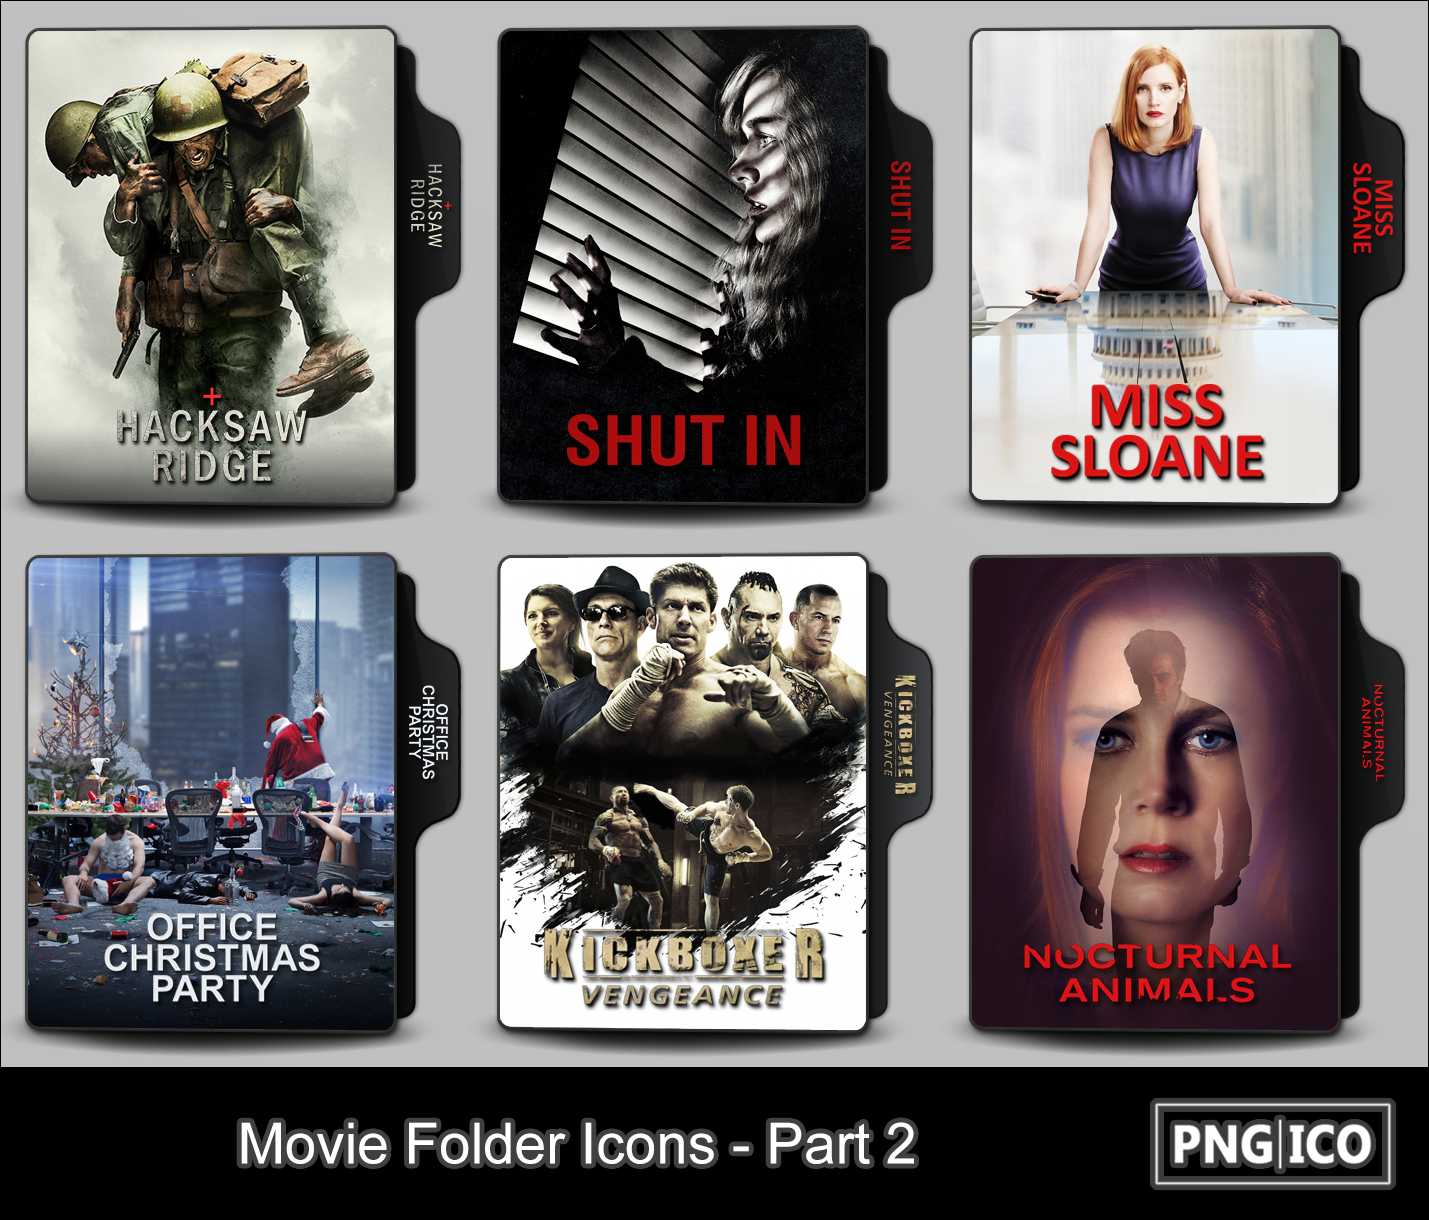 Movie Folder Icons - Part 2 by OnlyStyleMatters on DeviantArt